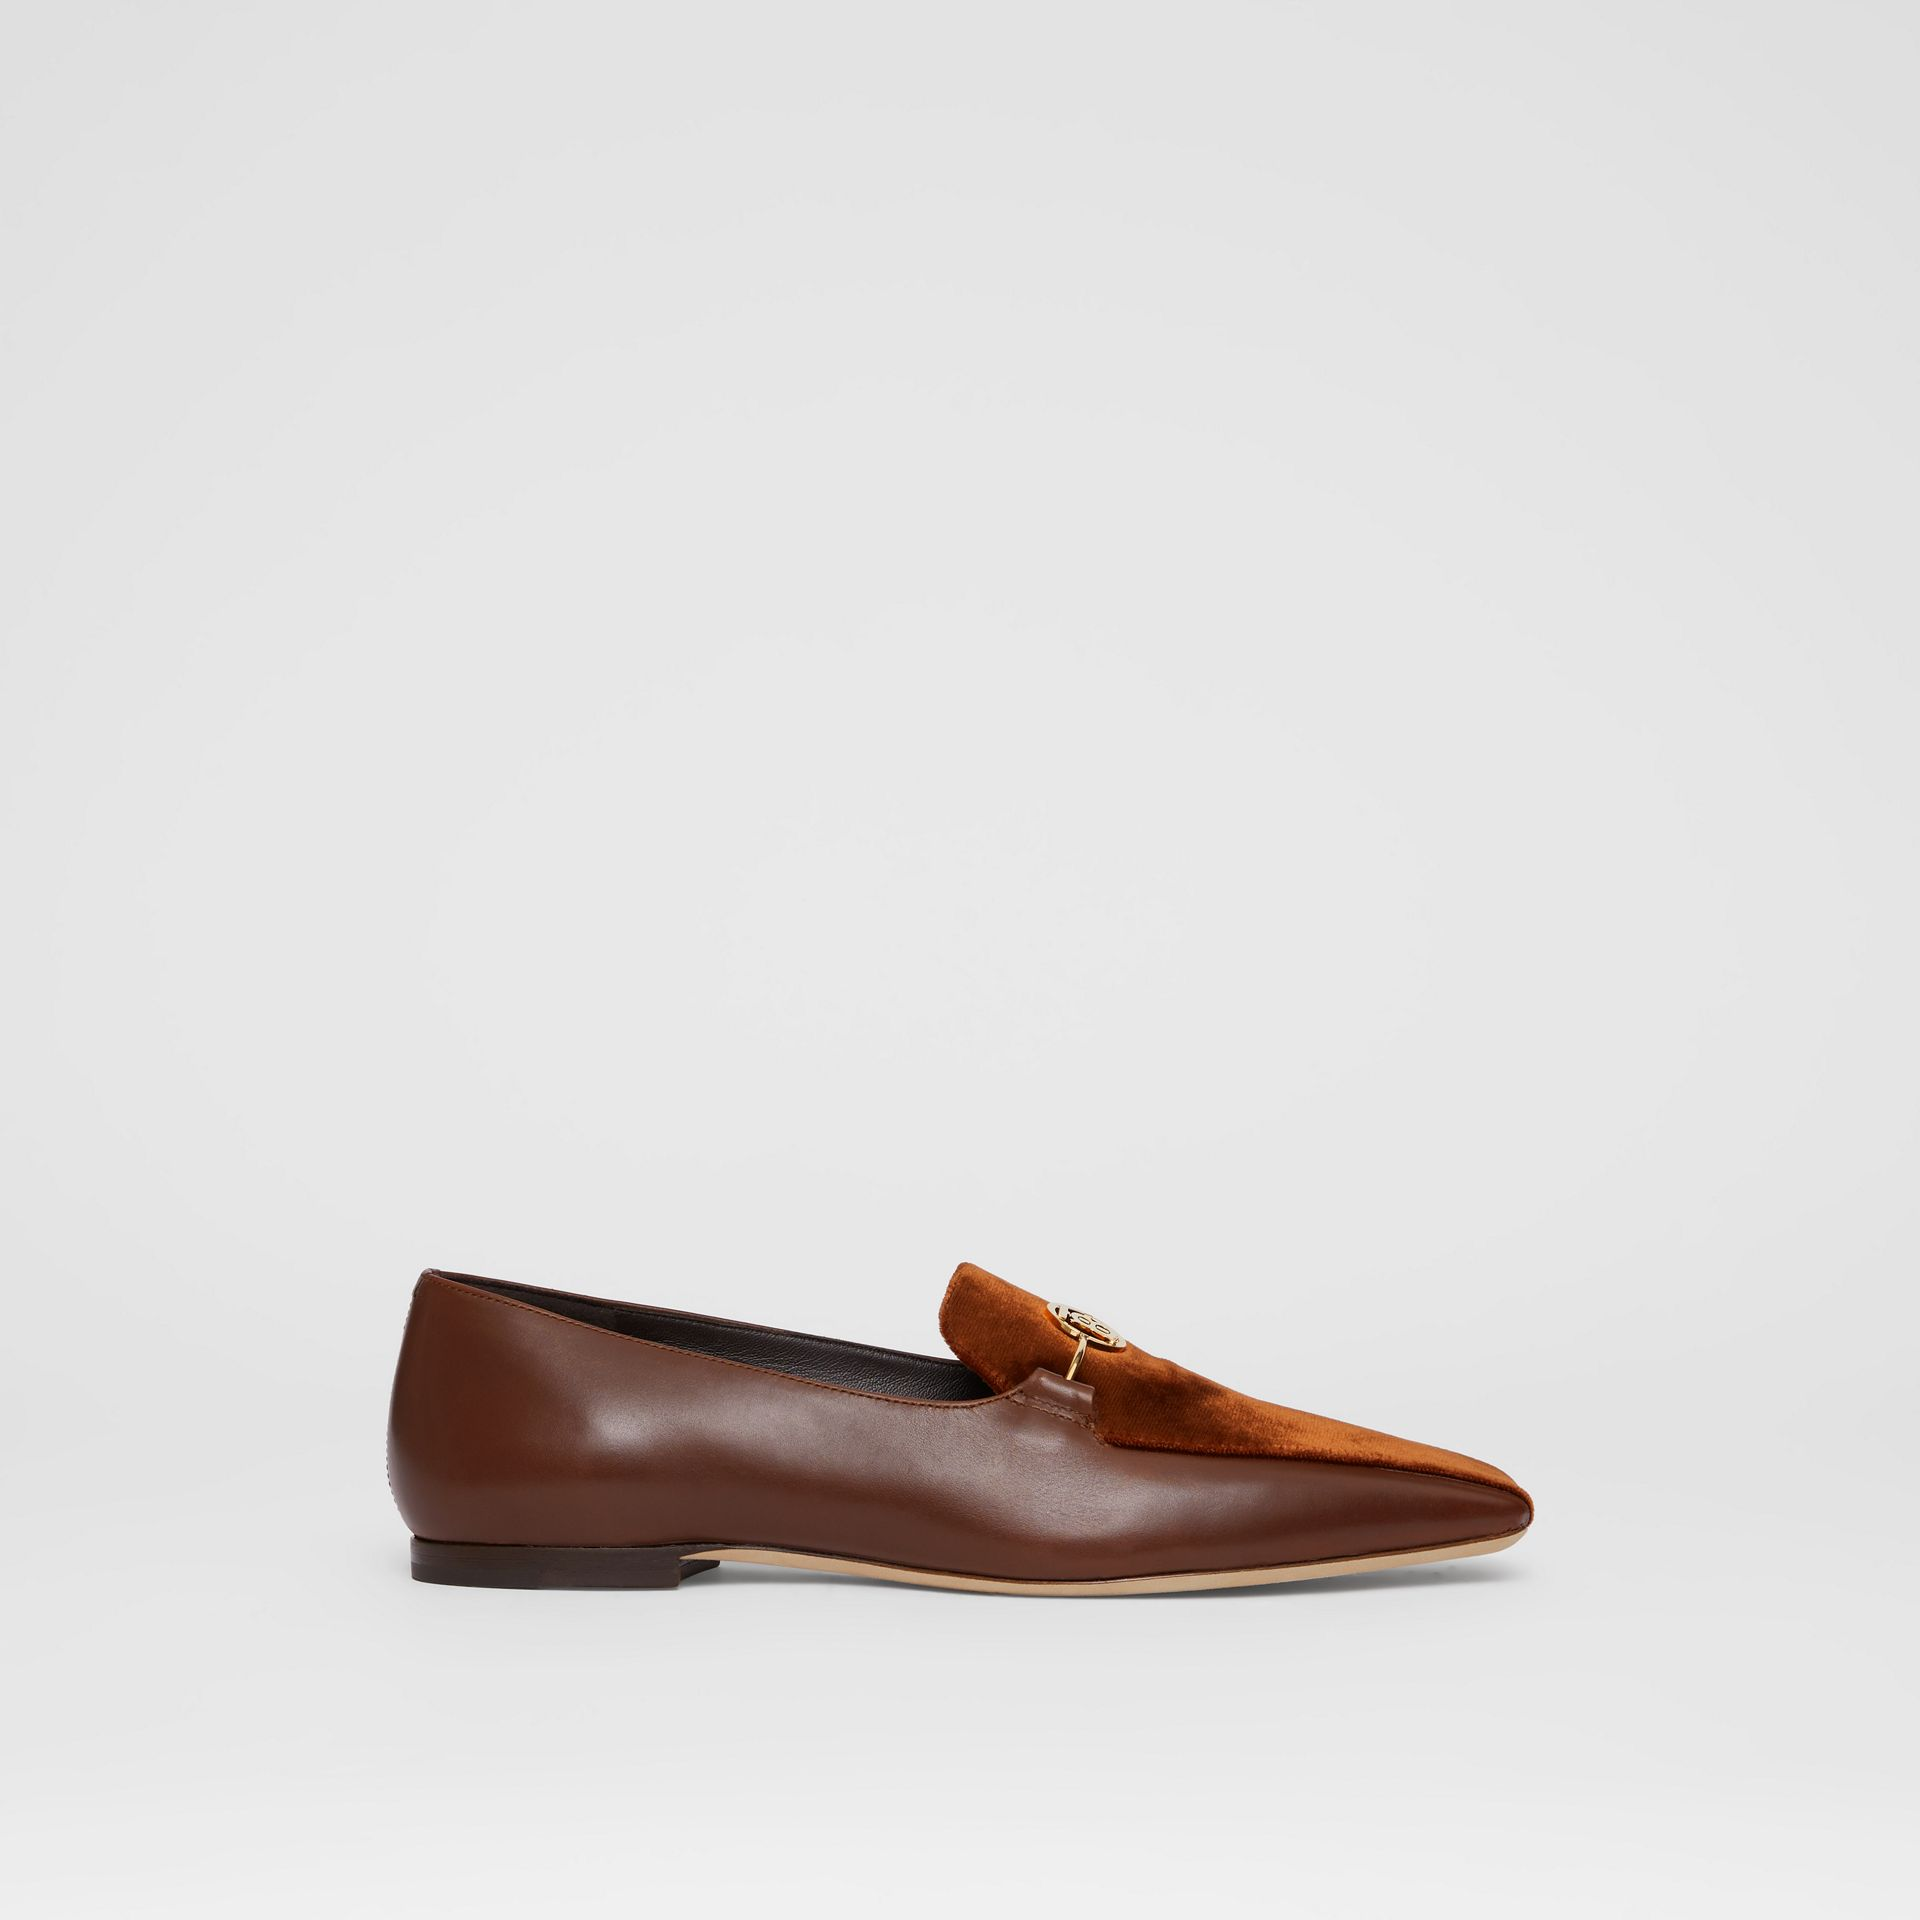 Monogram Motif Velvet and Leather Loafers in Dark Chocolate/tan - Women | Burberry - gallery image 5